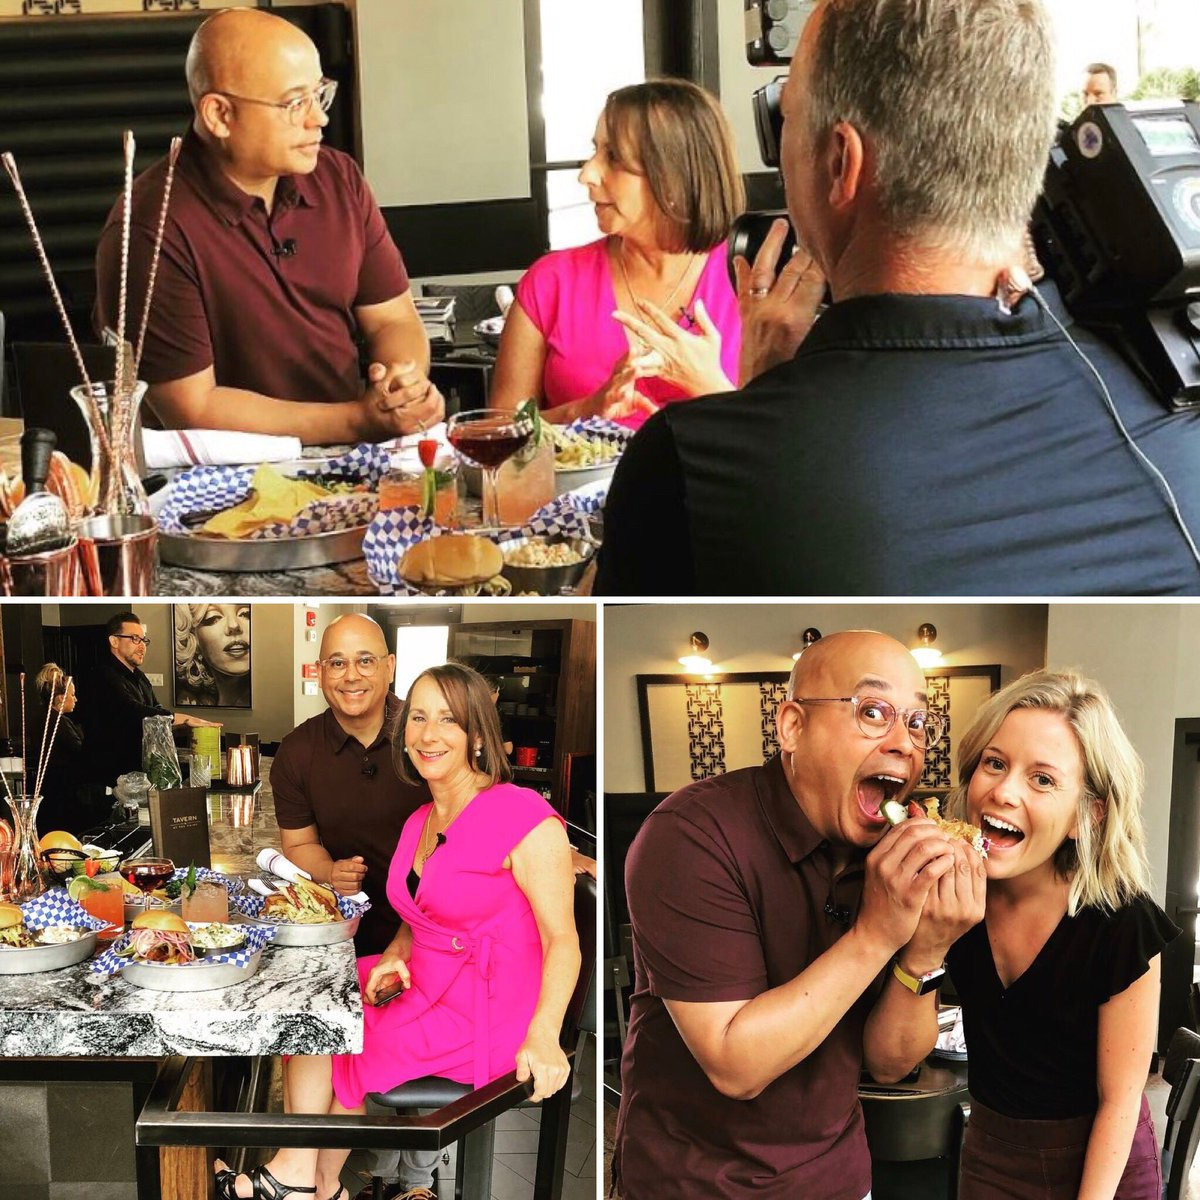 She's all about the food, I'm all about what's new! LOVE what happens when we get together! Find out what's happening in these pictures and where on @FOX59 with @lizbiro on #FOX59Morning #whereissherman this Monday morning starting at 745am!<br>http://pic.twitter.com/q9kiRxjR4Y